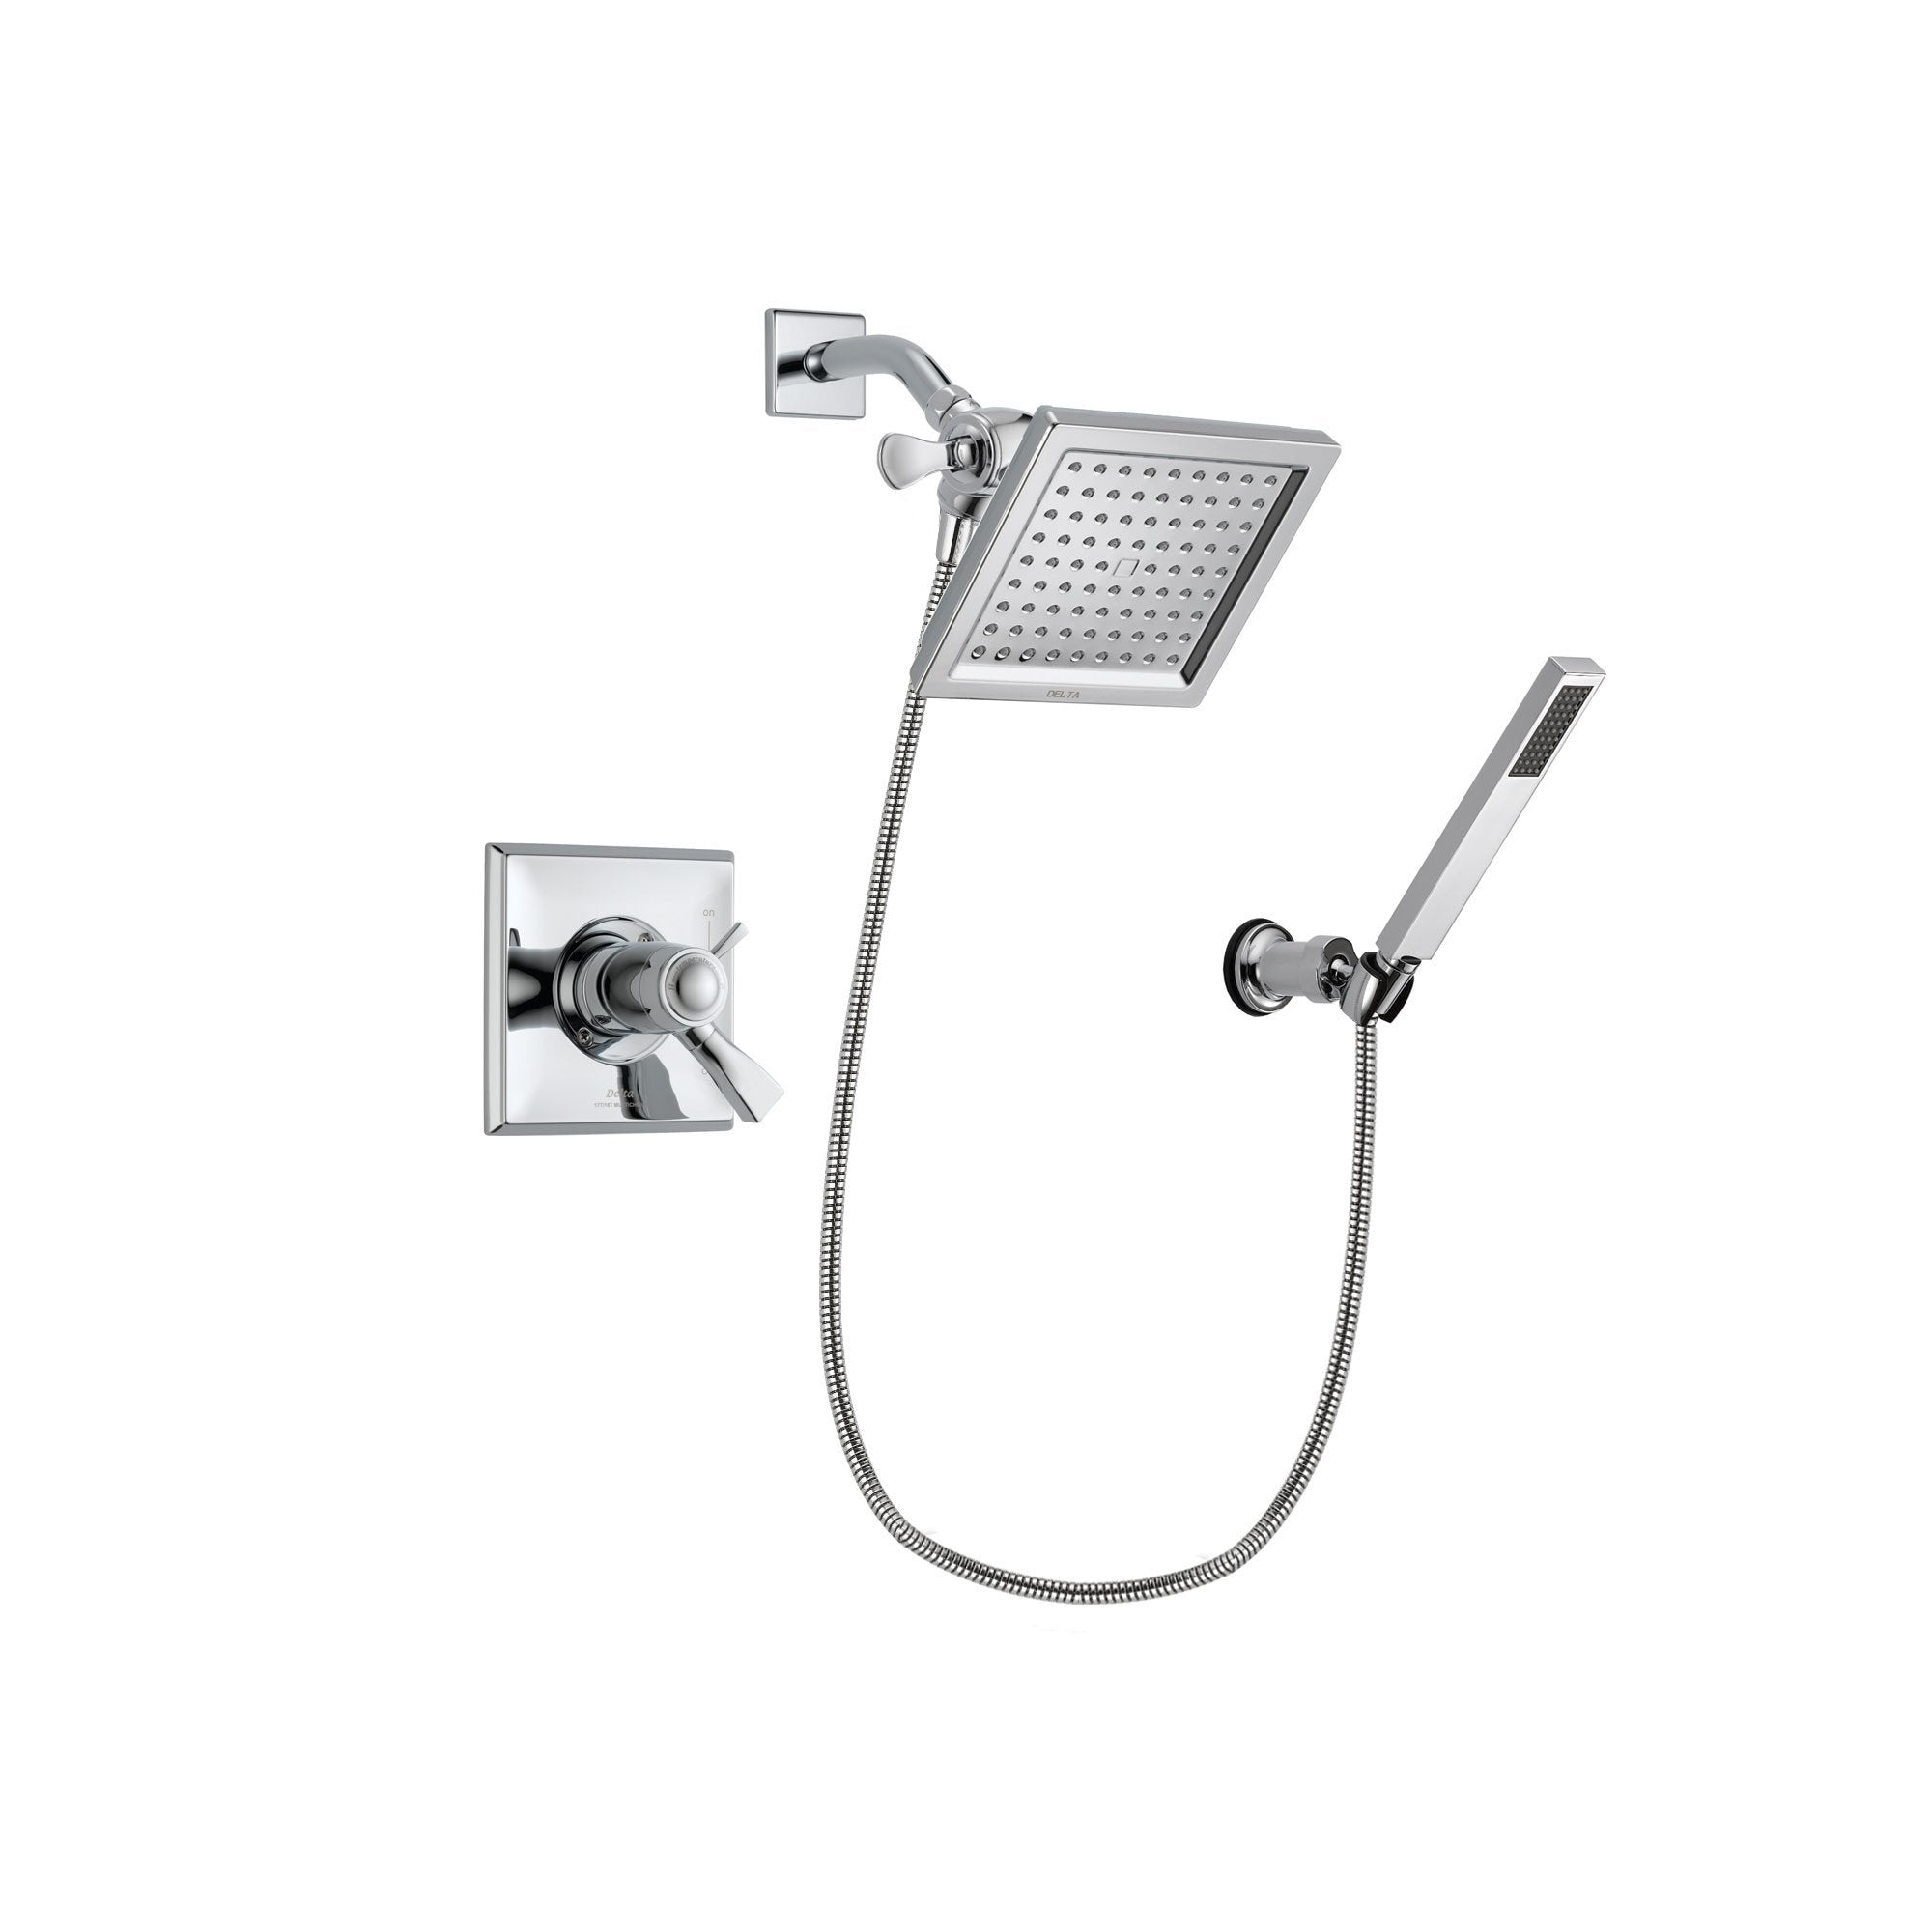 Delta Dryden Chrome Shower Faucet System w/ Shower Head and Hand Shower DSP0113V